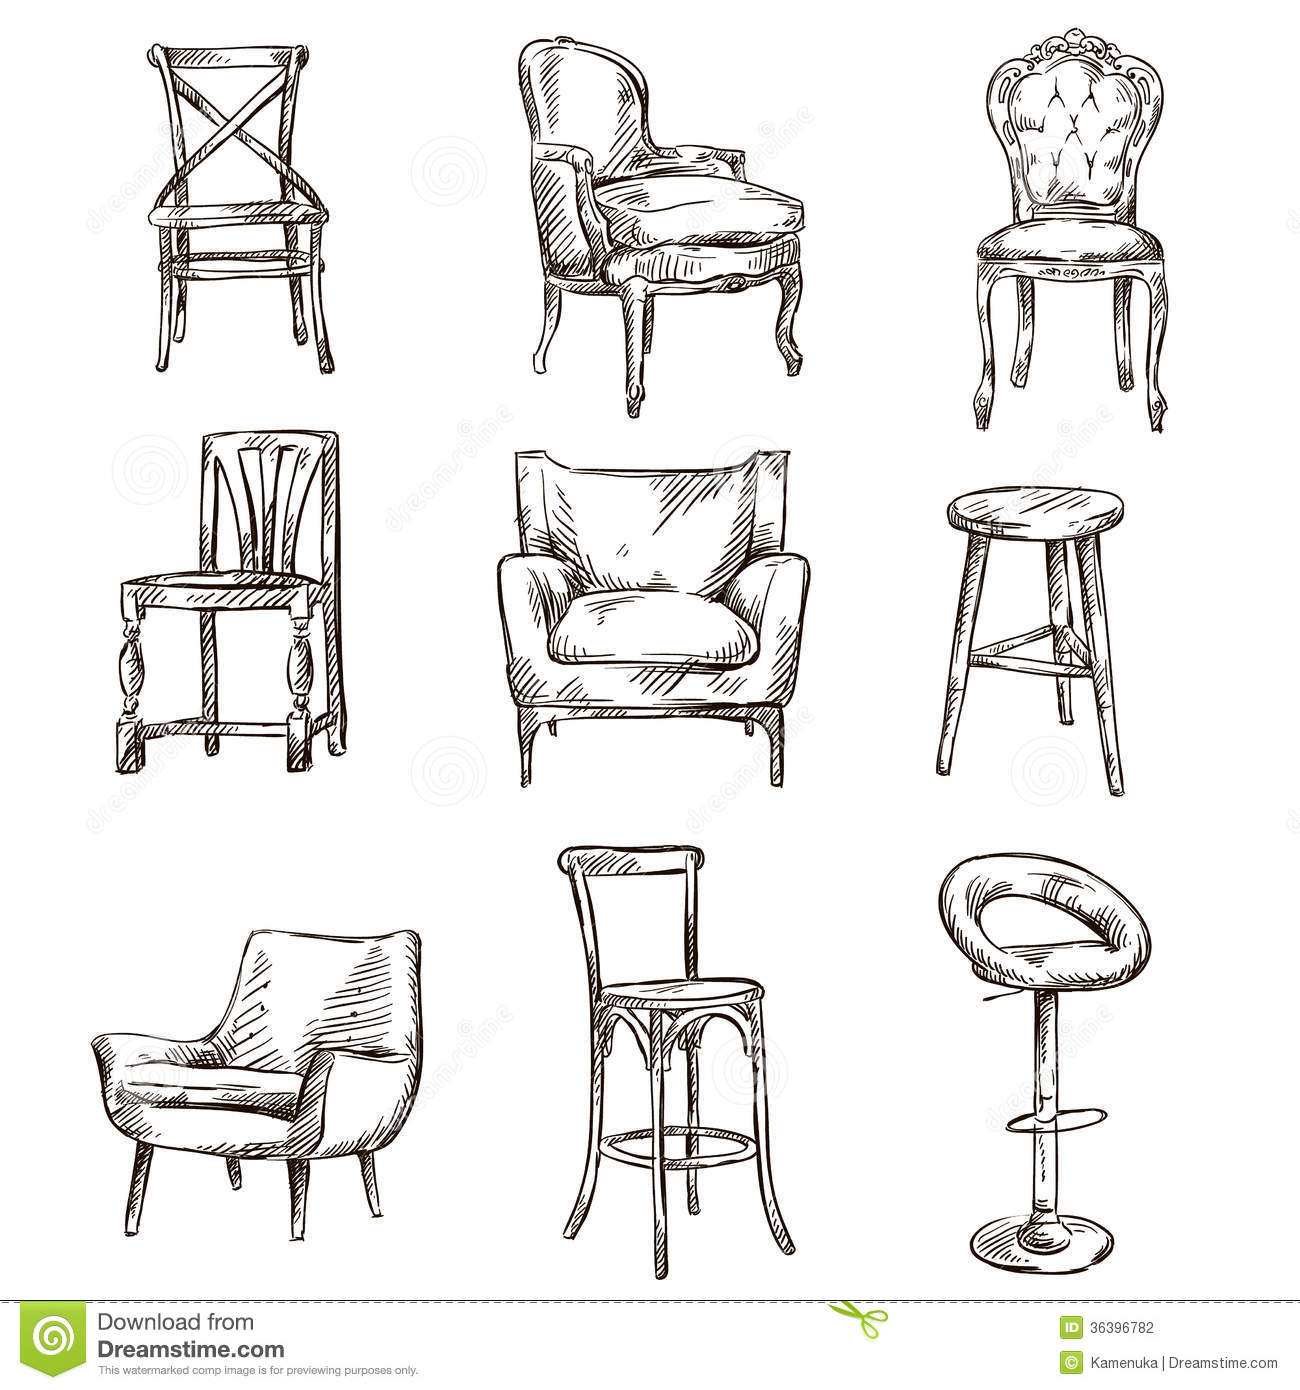 Set of hand drawn chairs stock vector Image of line  : set hand drawn chairs interior detail 36396782 from www.dreamstime.com size 1300 x 1390 jpeg 192kB